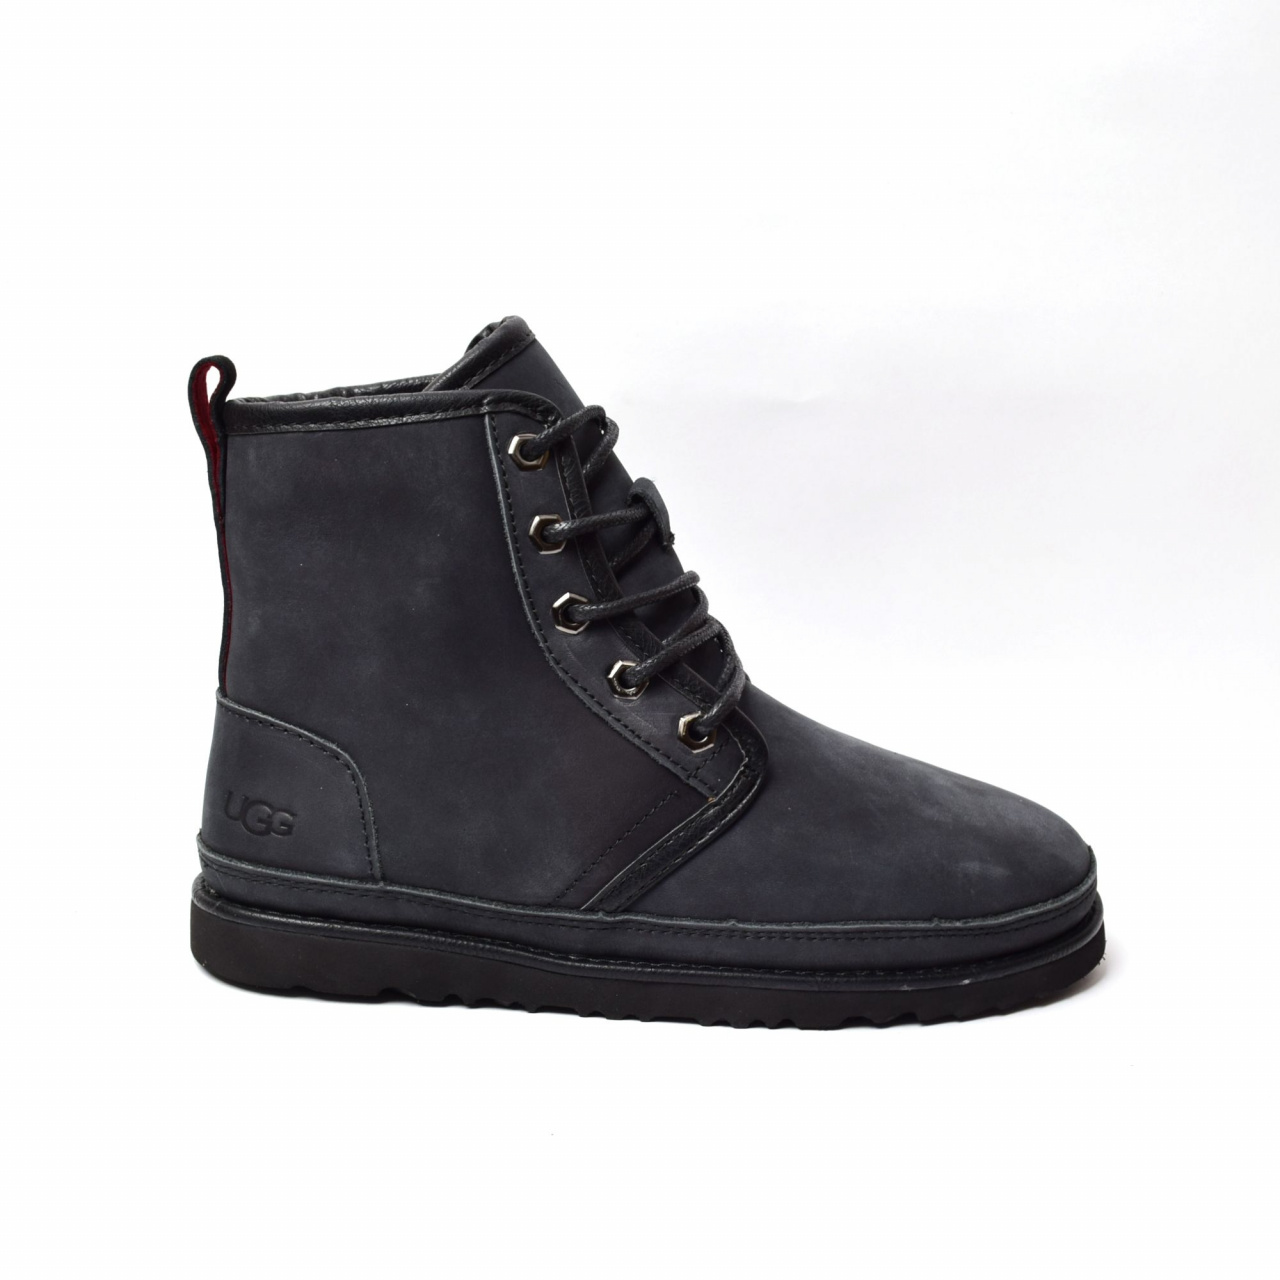 MENS Harkley Waterproof Boot Black